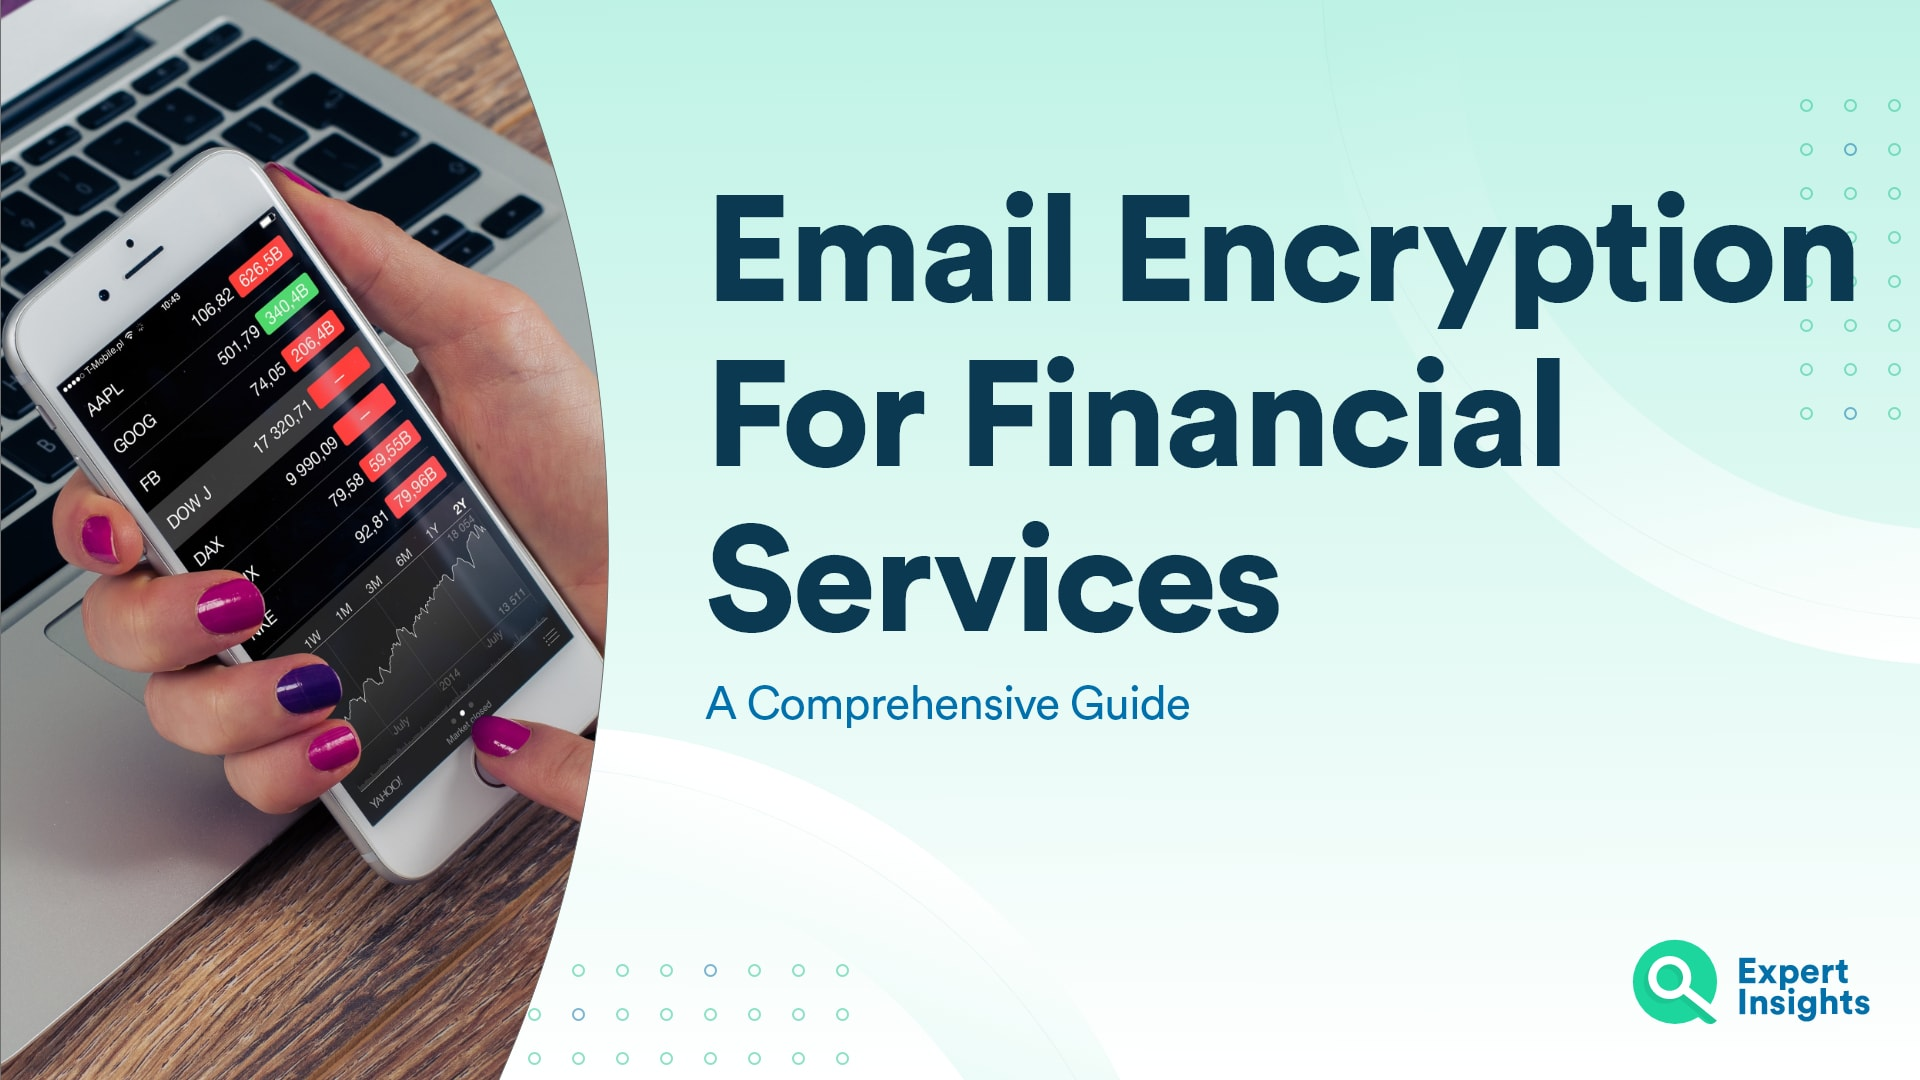 Email Encryption: A Comprehensive Guide For Financial Services - Expert Insights